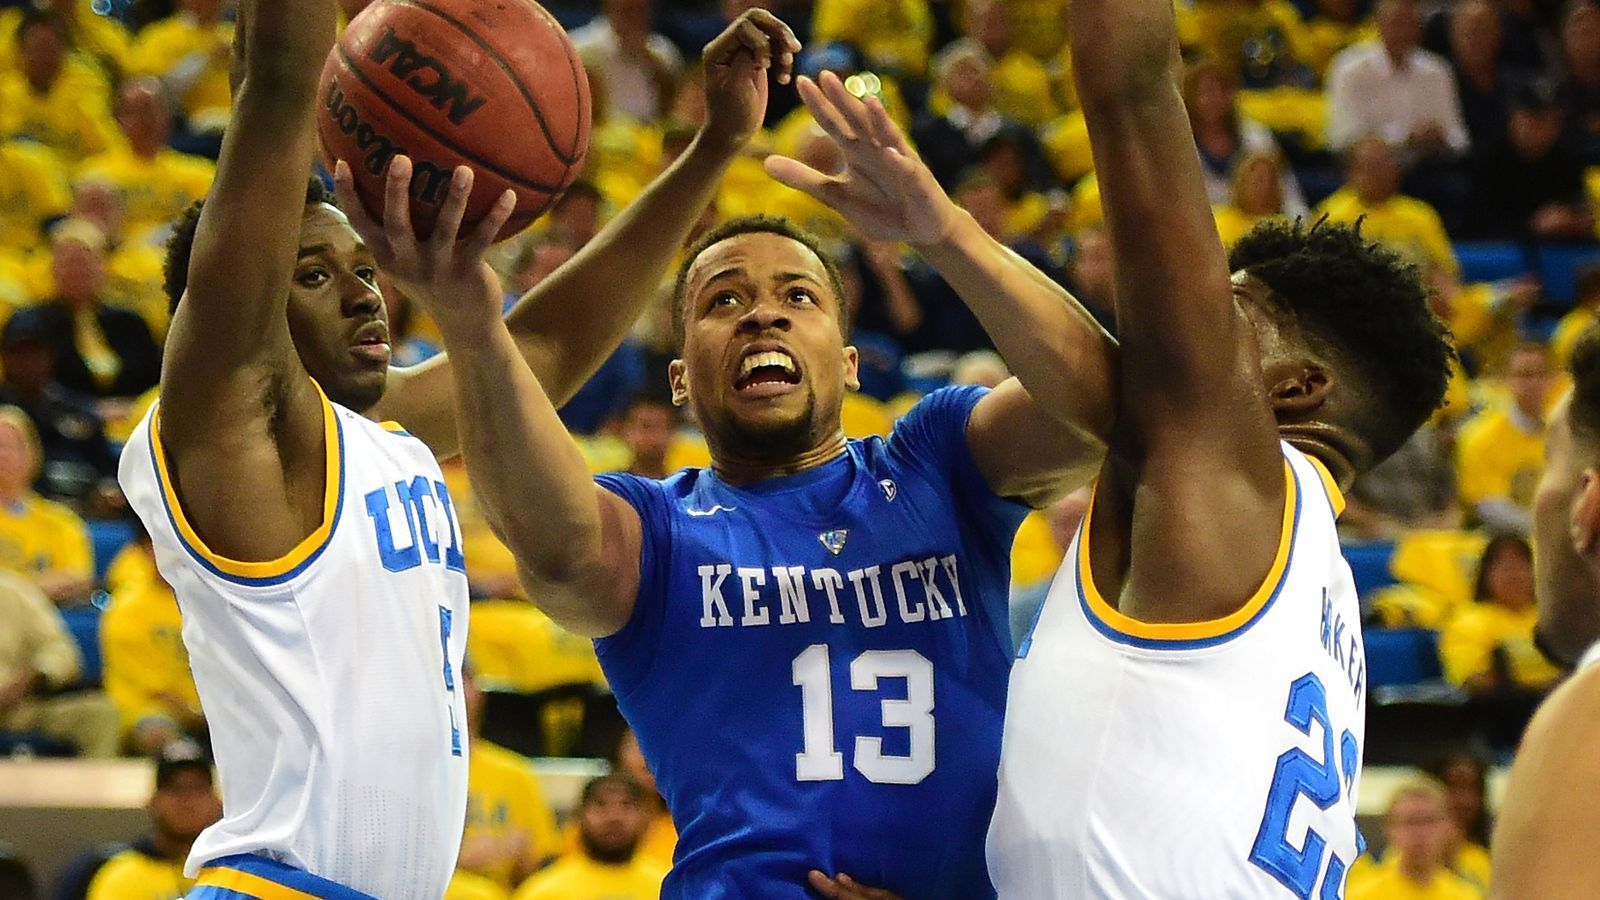 Kentucky Basketball Announces Tv Schedule Game Times And: Kentucky Wildcats Vs. UCLA Bruins: Game Time, TV Schedule